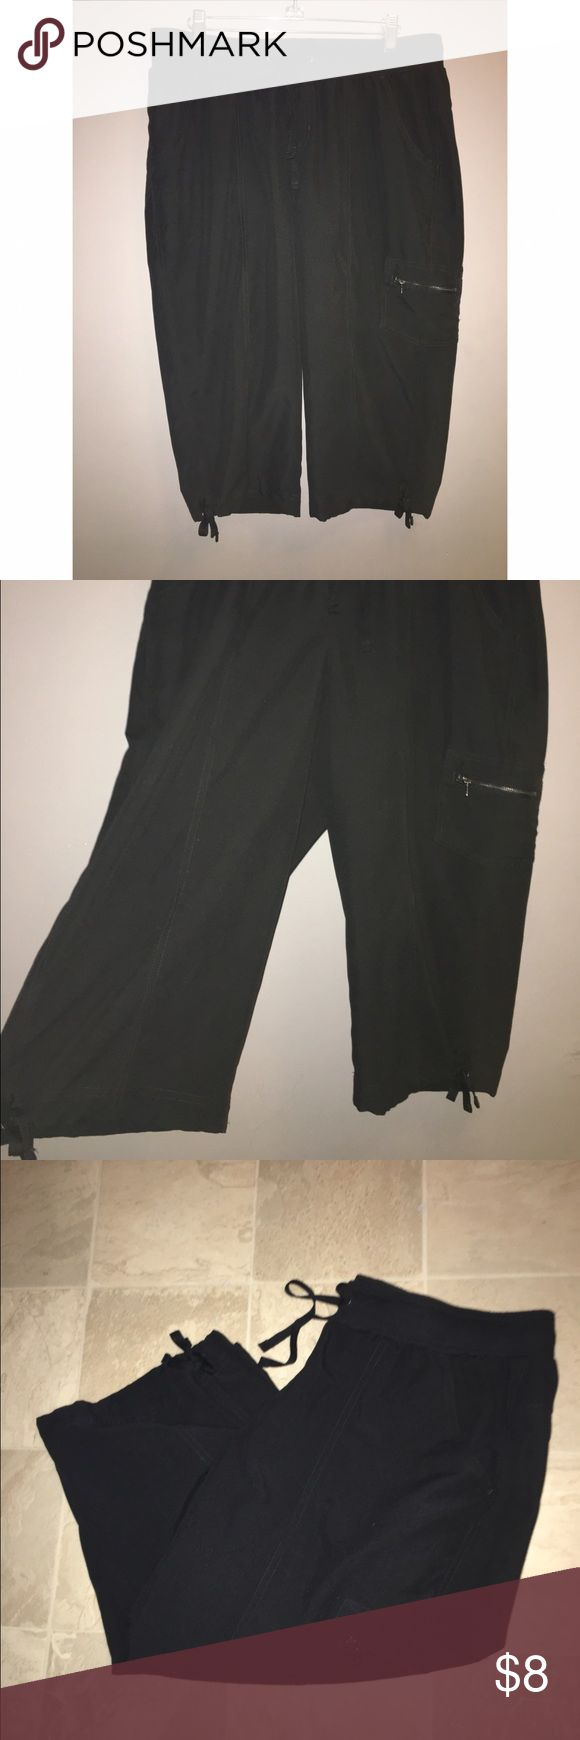 Ladies Tek Gear Nylon Crop Pants Sz Large Nylon Tek Gear black crop pants. Size Large. Ties on bottom of pants. Please ask any and all questions prior to purchase. tek gear Pants Track Pants & Joggers